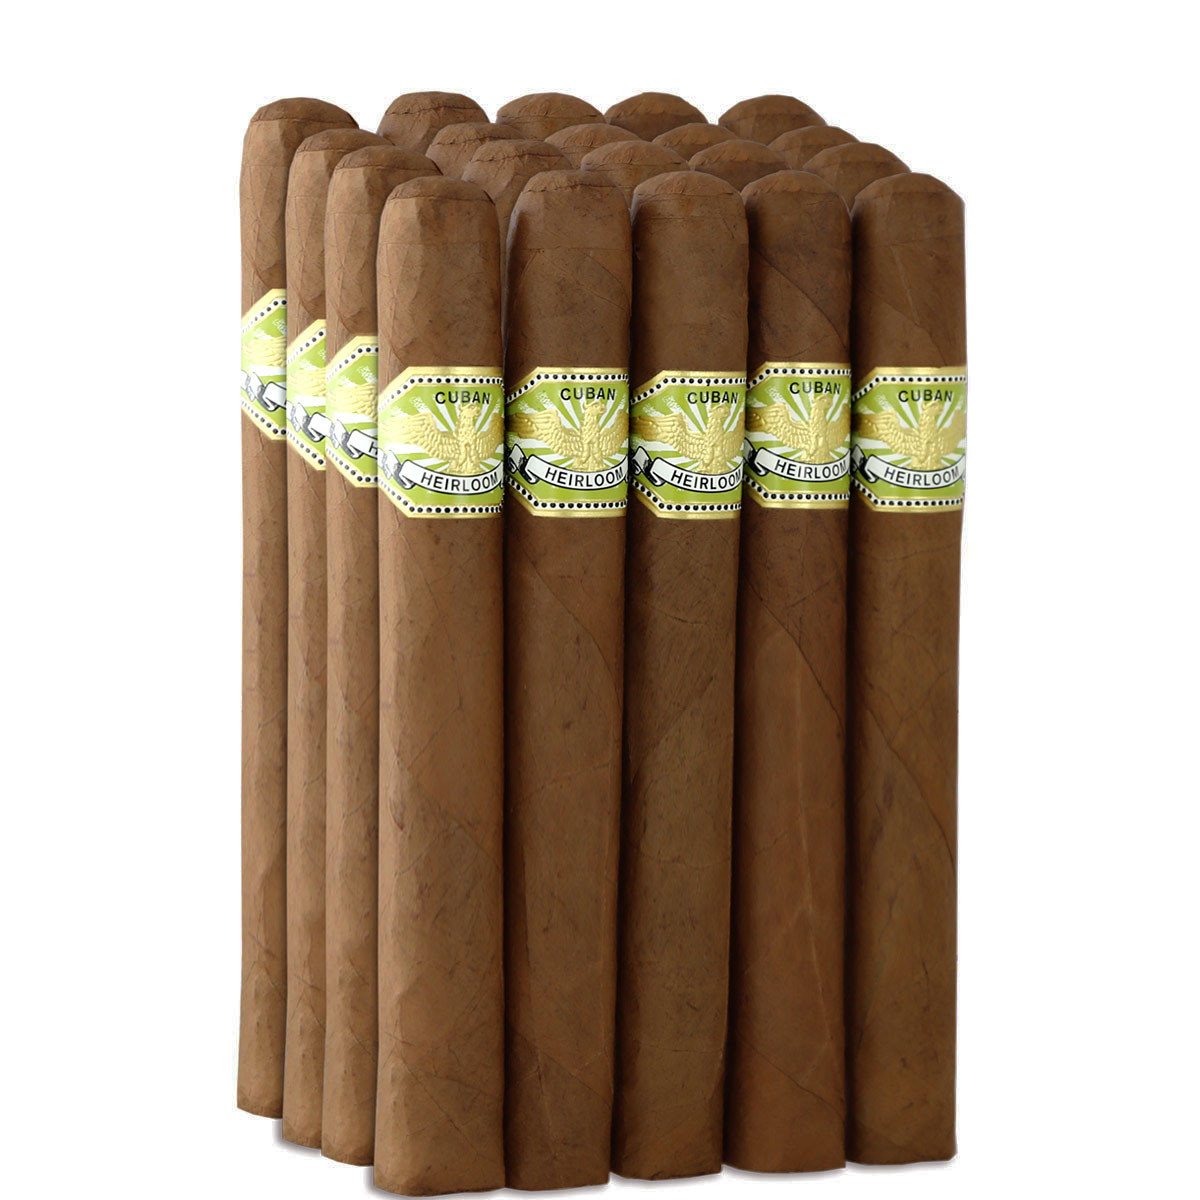 Cuban Heirloom Cameroon Churchill (7x50 / Bundle of 20)